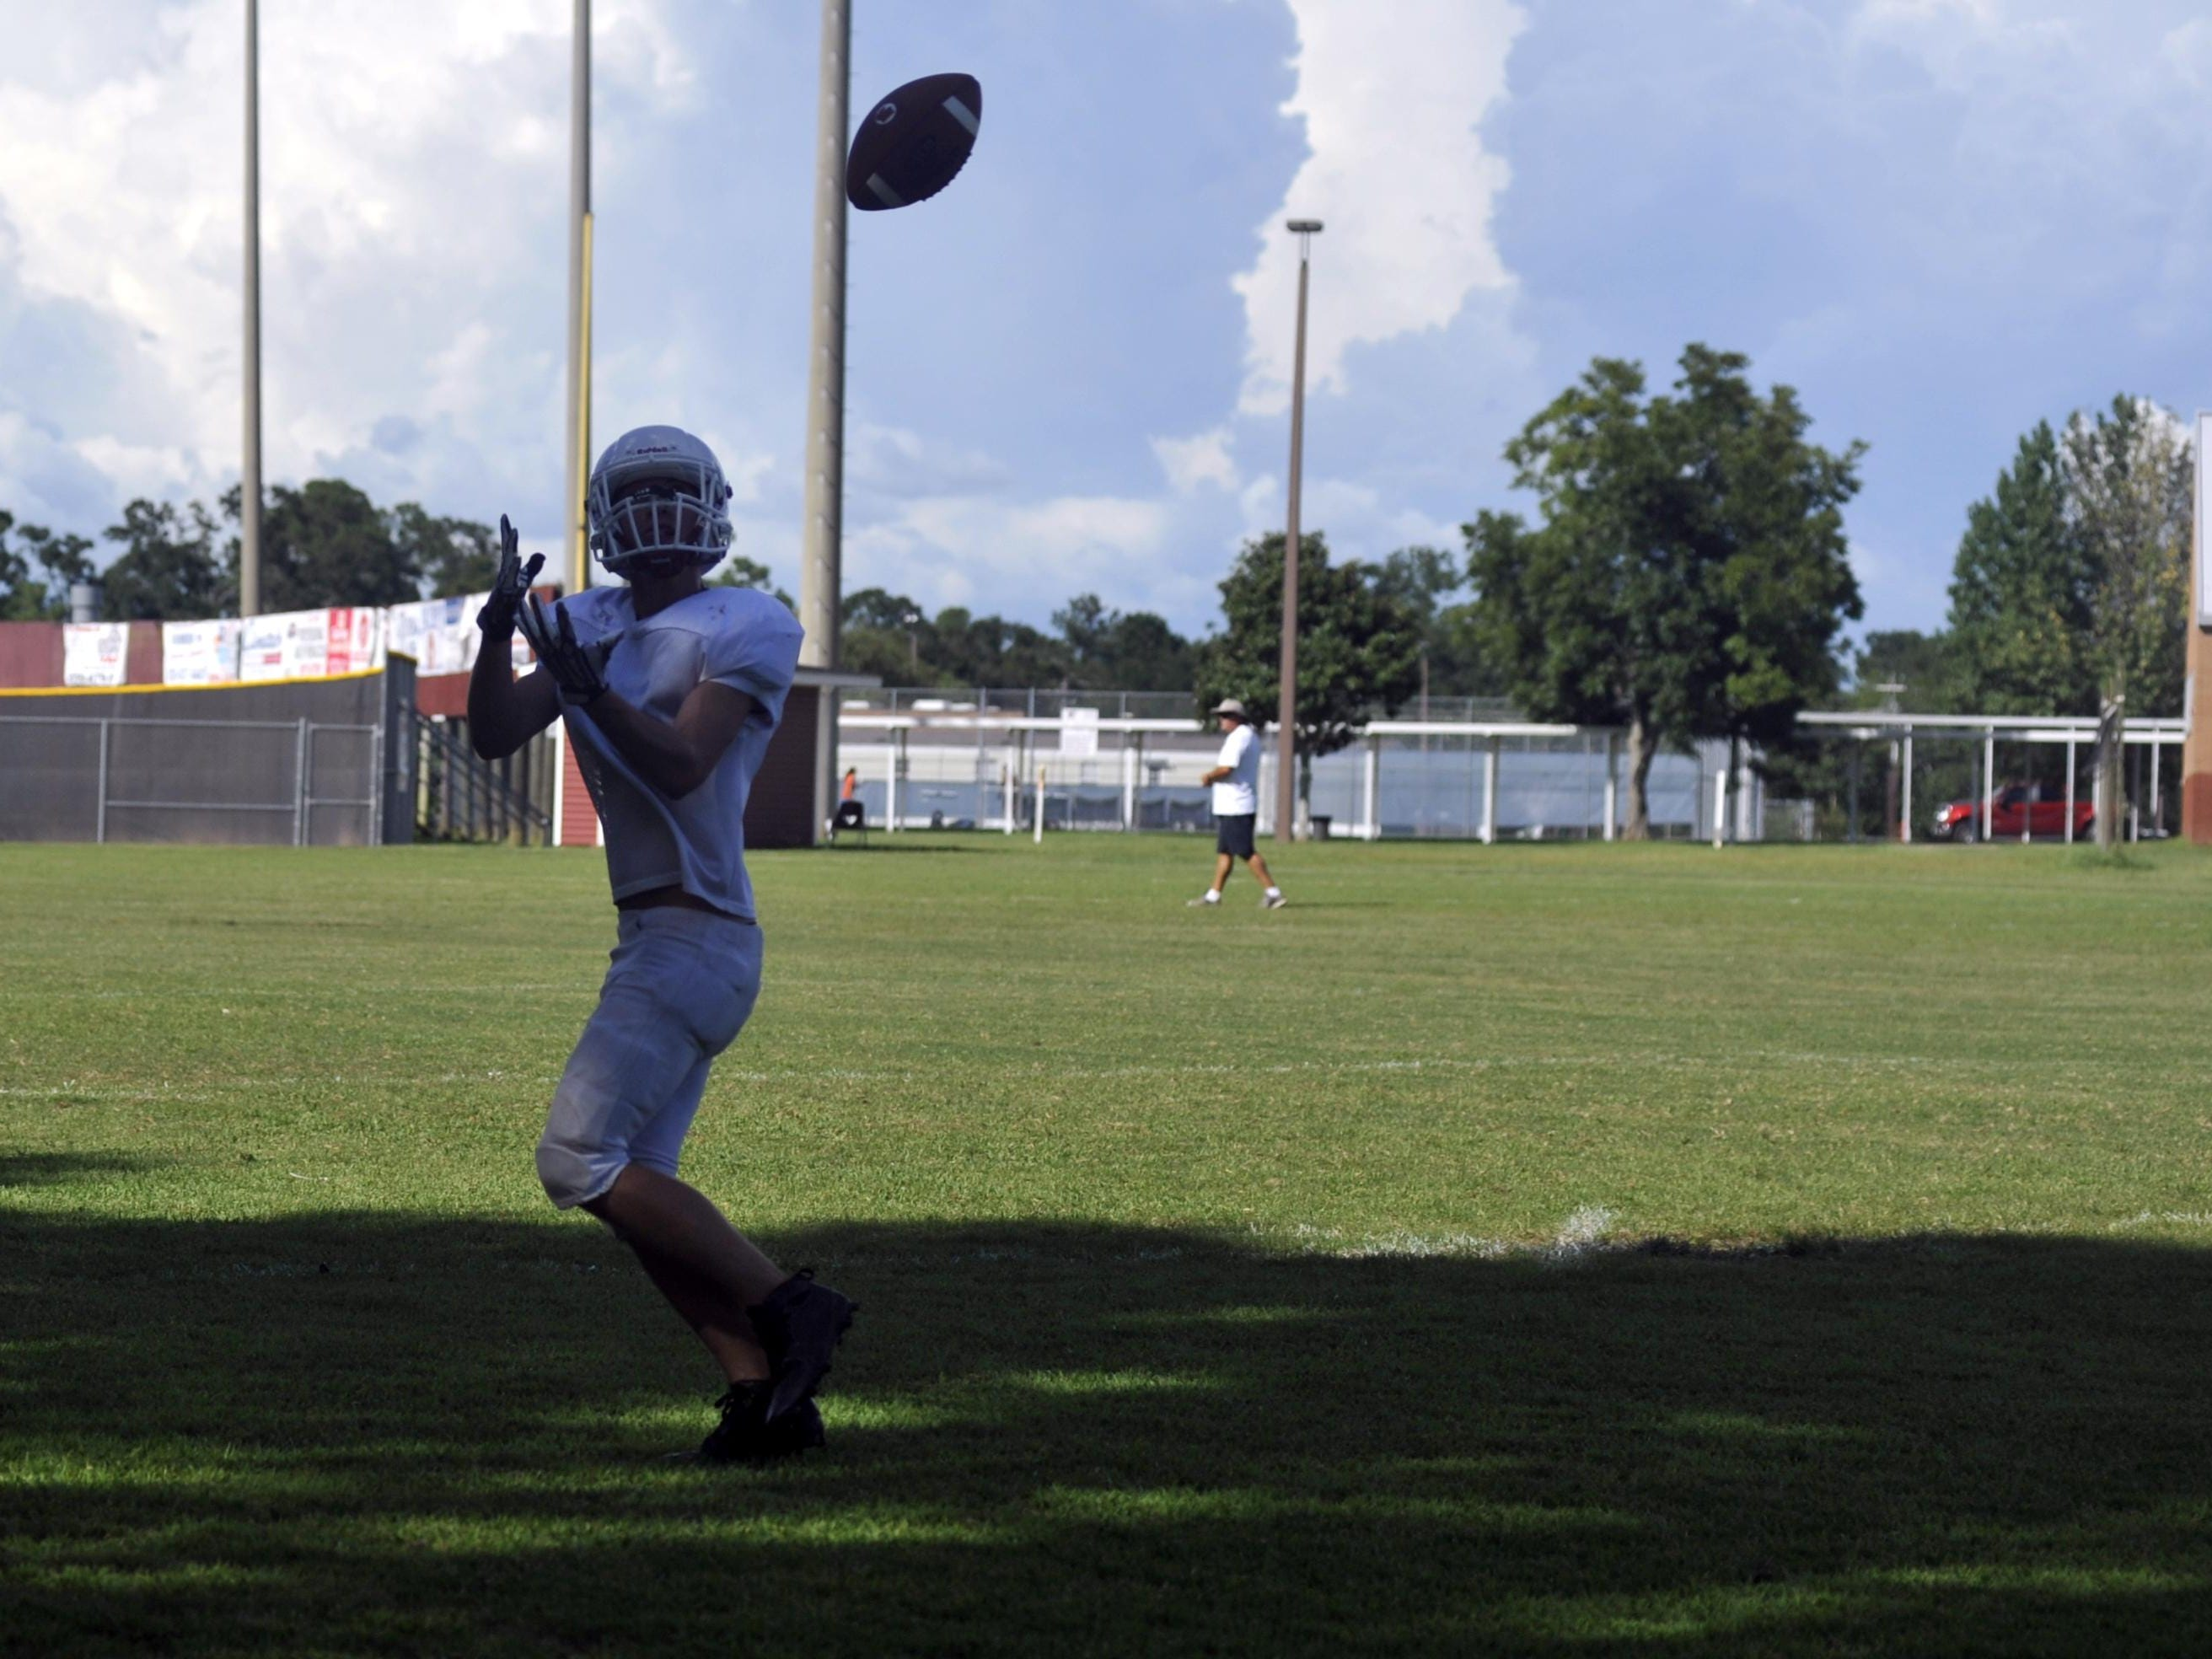 A Tate wide receiver catches a pass during practice on Aug. 16, 2016.